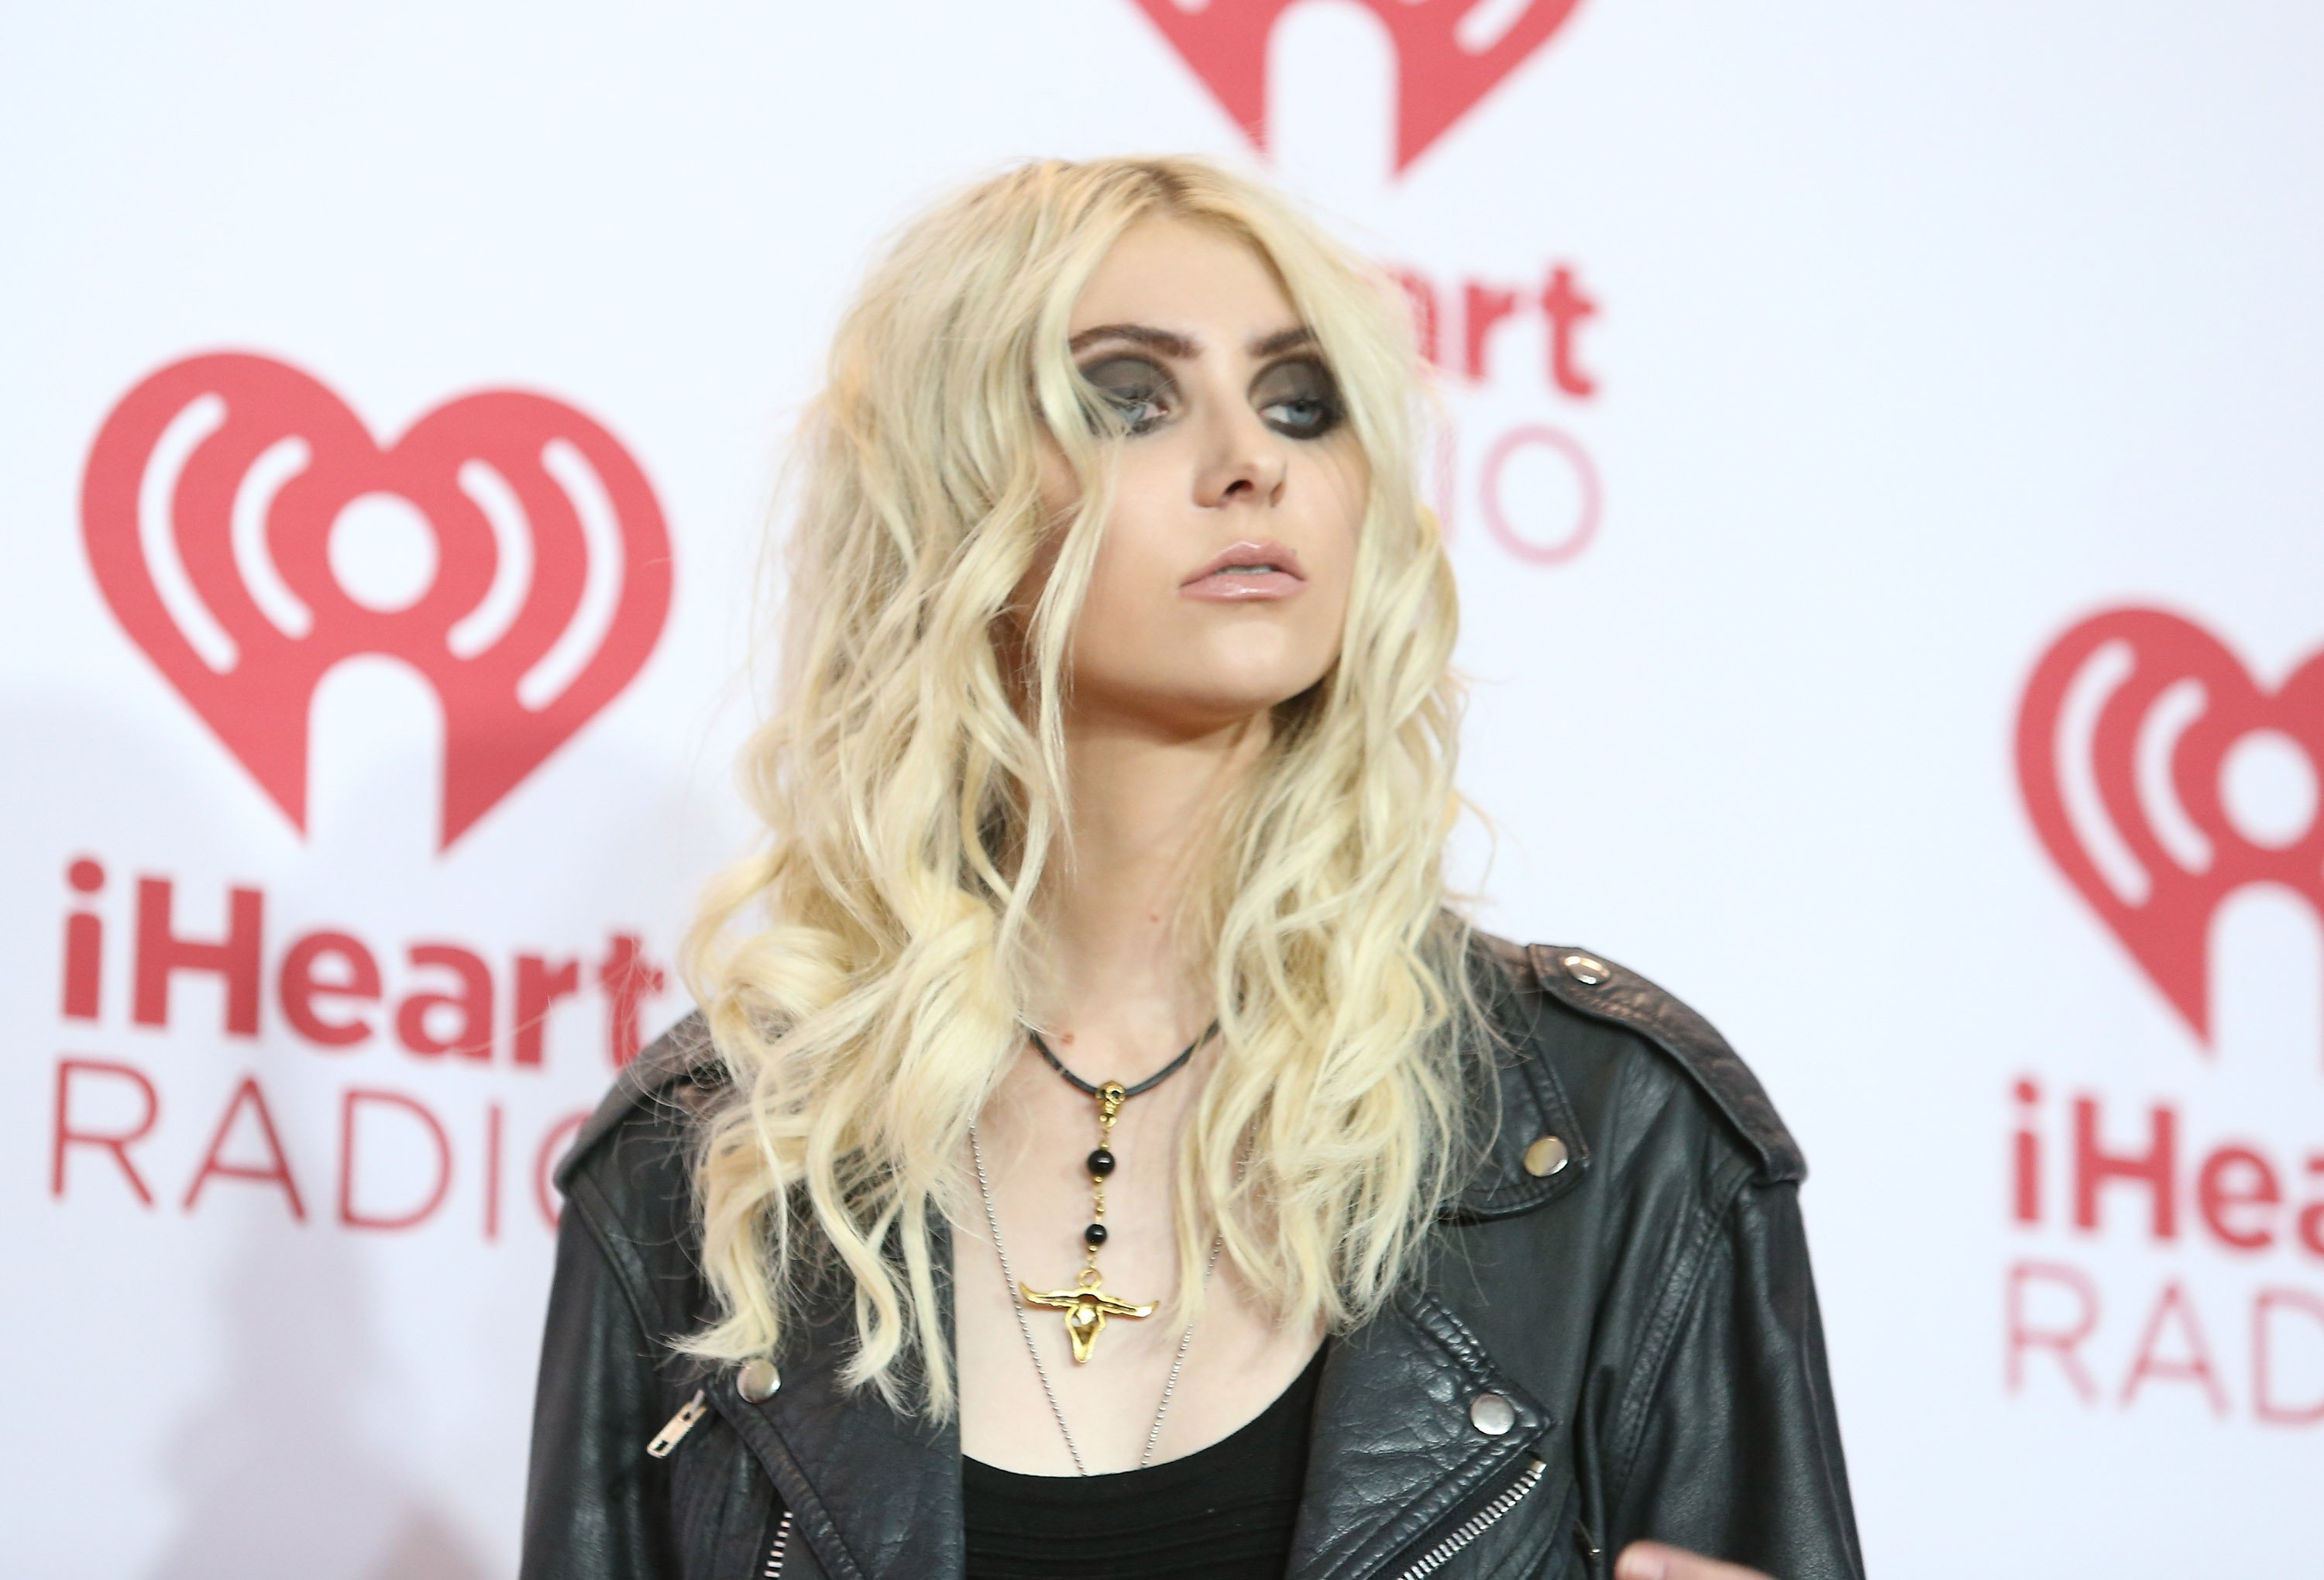 Taylor Momsen attends the iHeart Radio Music Festival on September 19, 2014 in Las Vegas, Nevada. |Photo: Getty Images